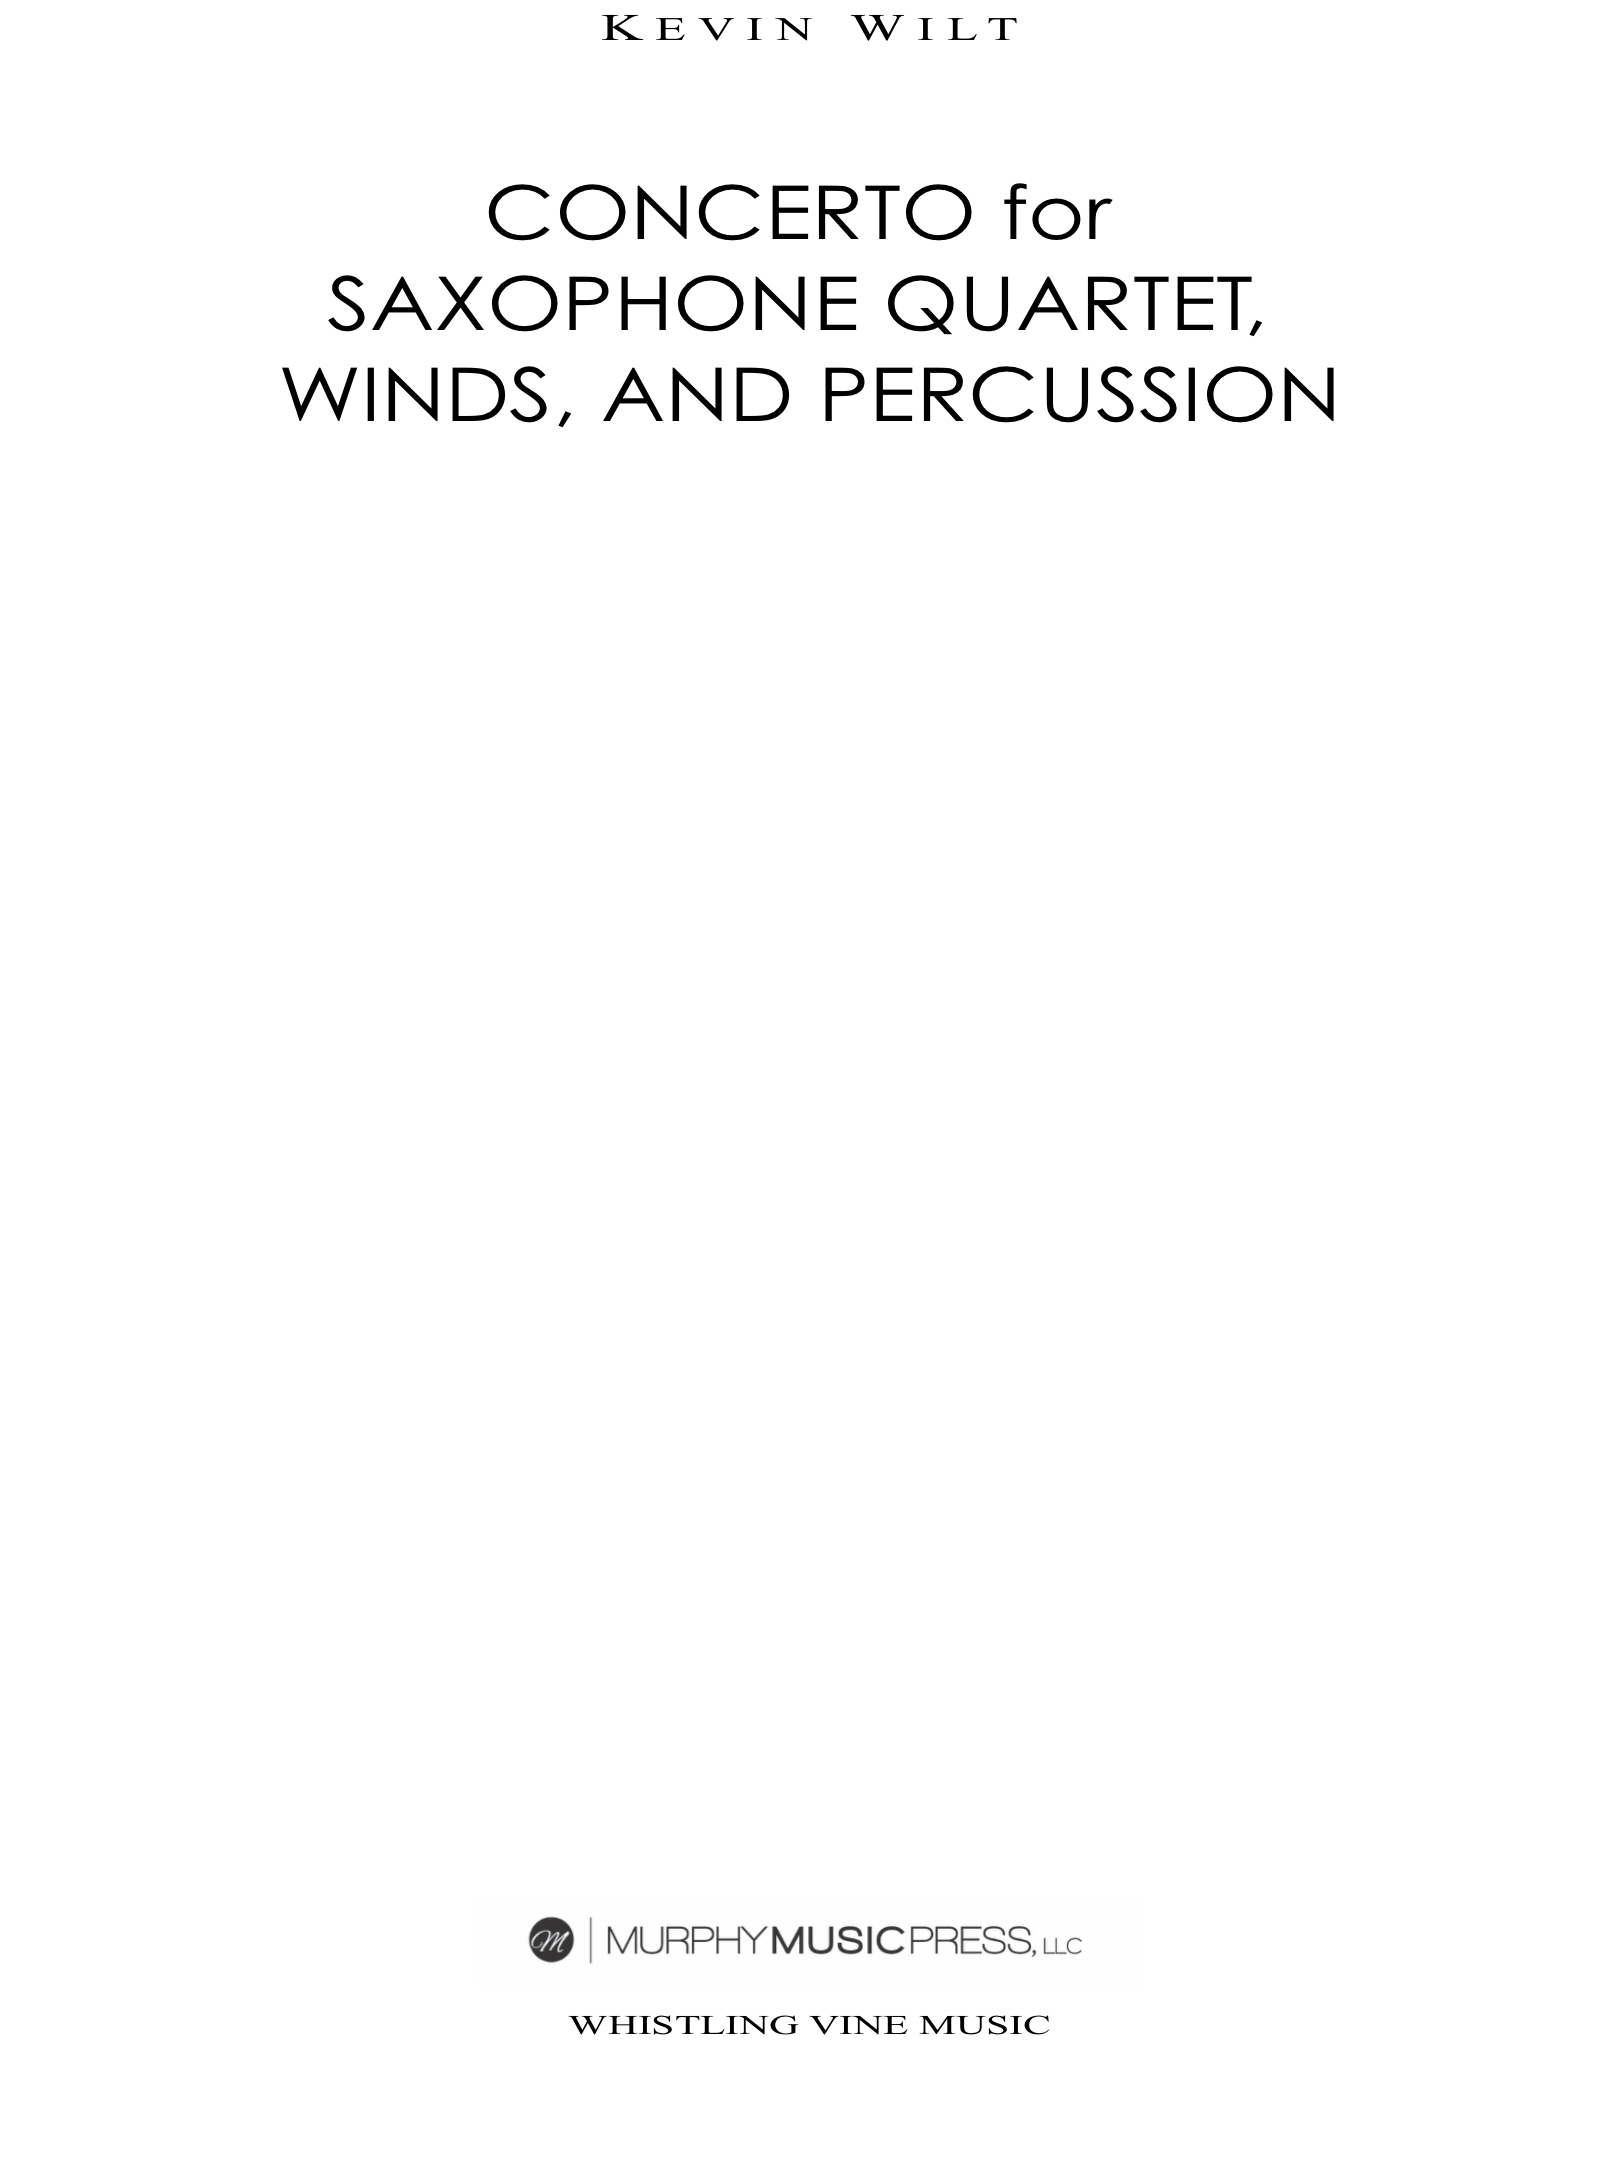 Concerto For Saxophone Quartet And Wind Ensemble  by Kevin Wilt